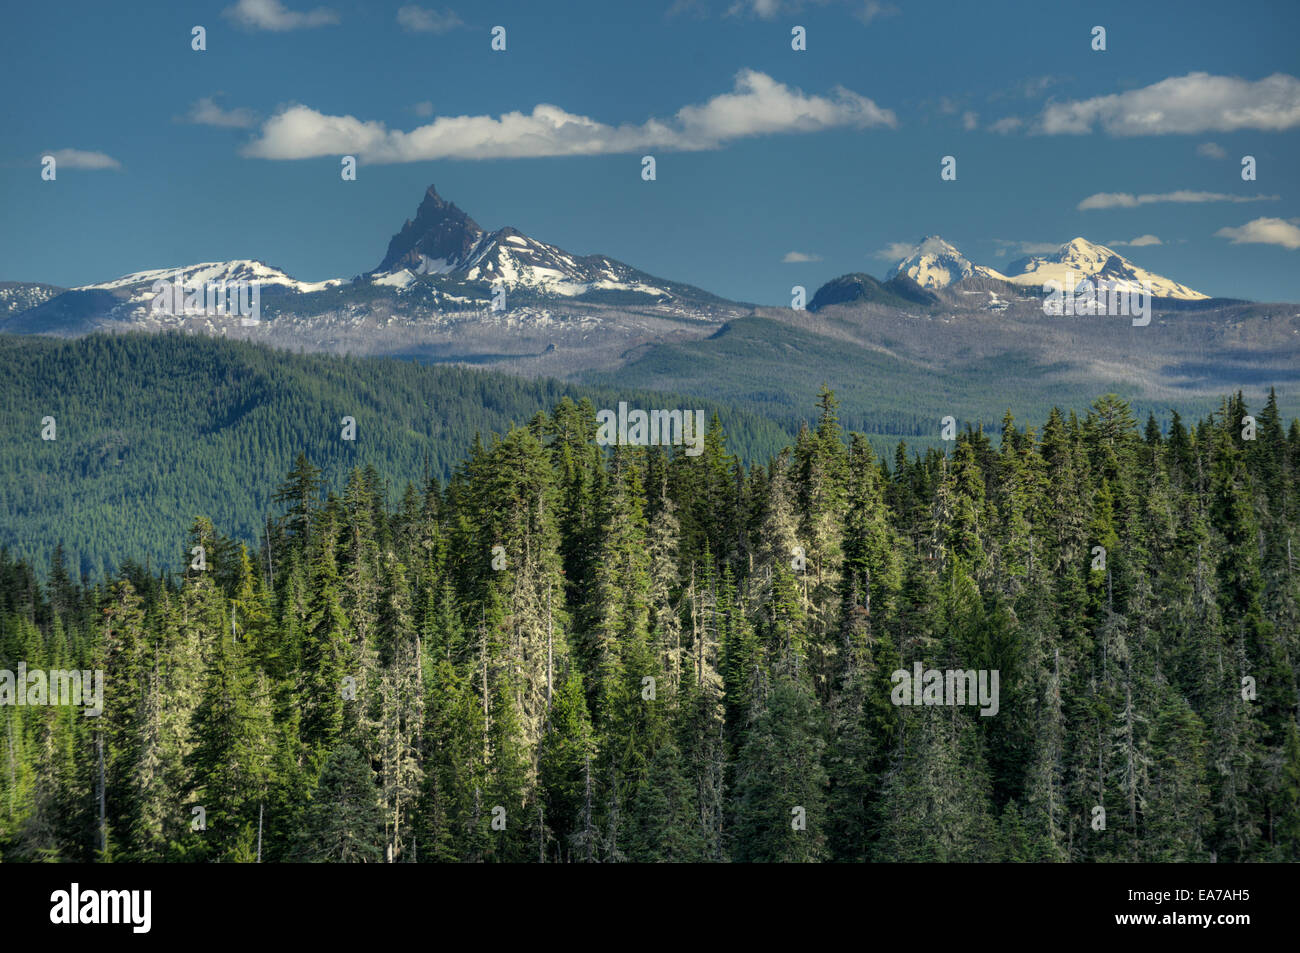 Three-Fingered Jack and two of the Three Sisters as seen from Outerson Mountain in the Willamette National Forest, Stock Photo